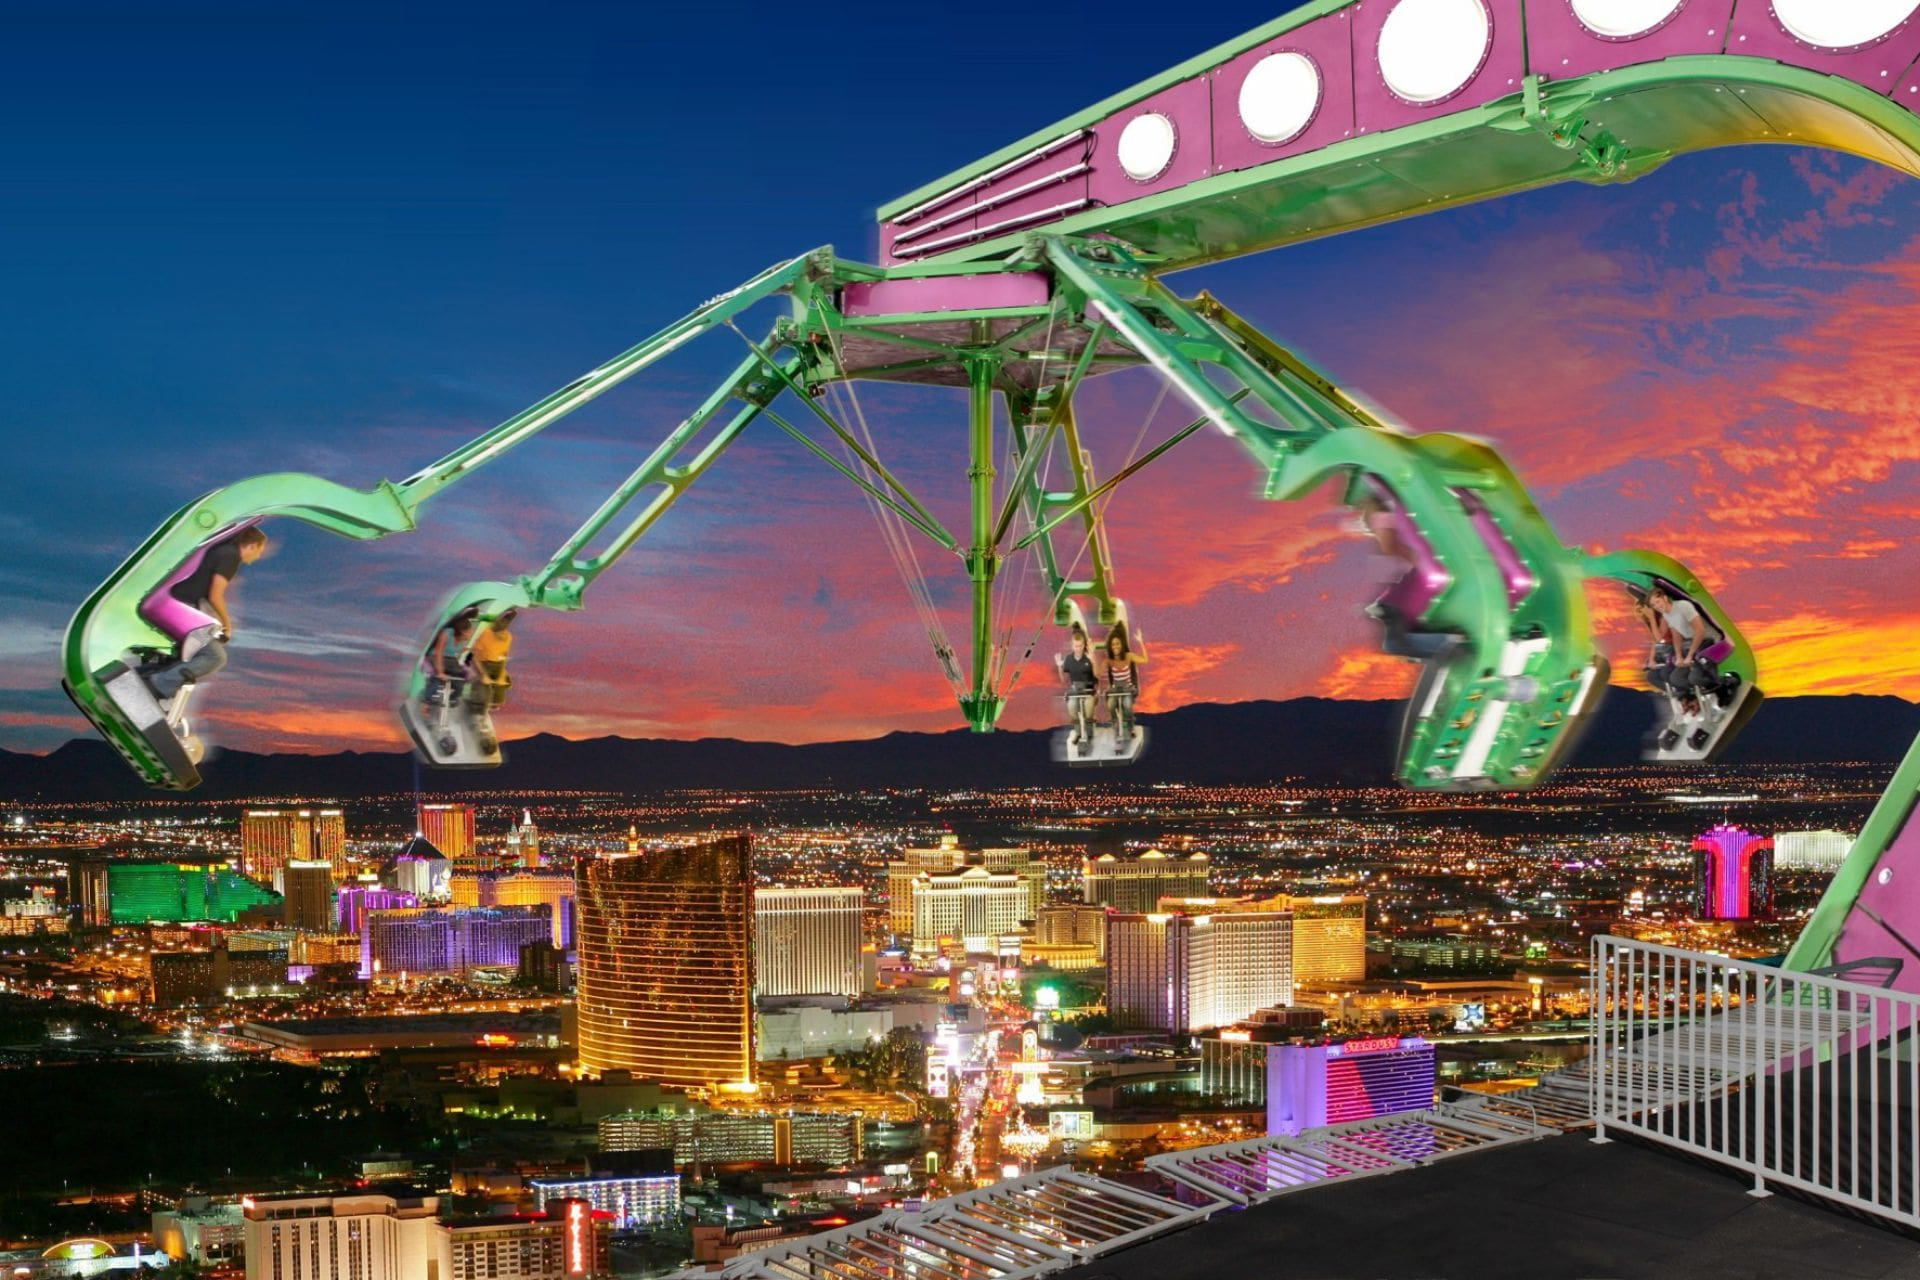 people-on-scary-insanity-ride-above-las-vegas-city